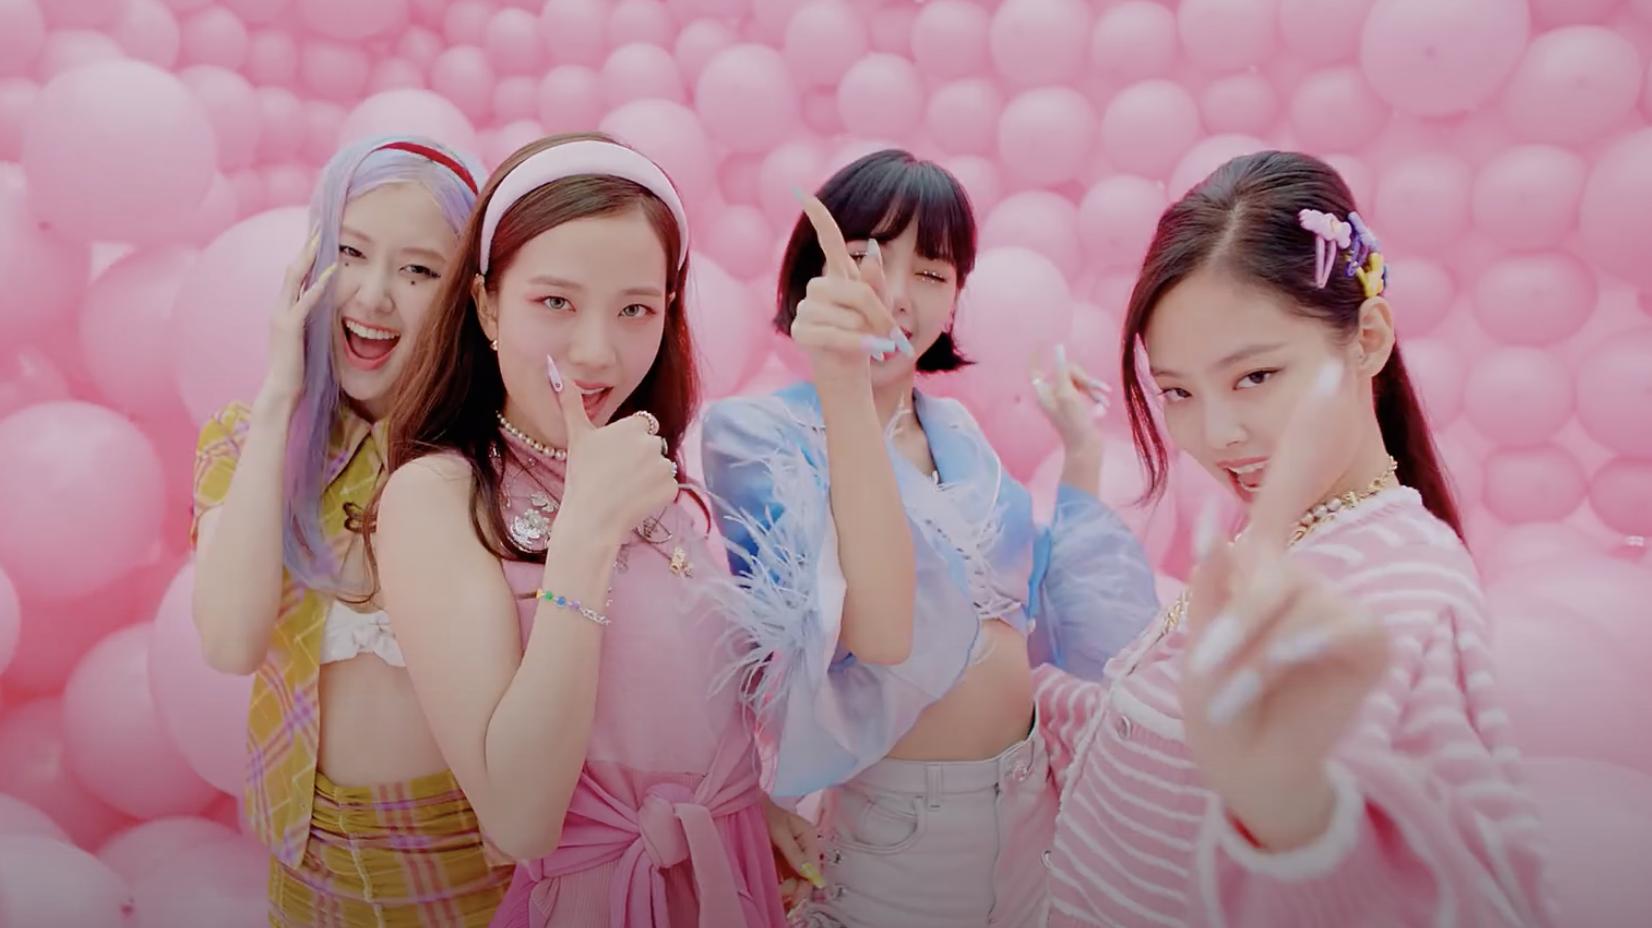 Blackpink Fashion Style Their Stunning Ice Cream Outfits And How Rose Jennie Lisa And Jisoo Like To Dress Both On And Offstage South China Morning Post